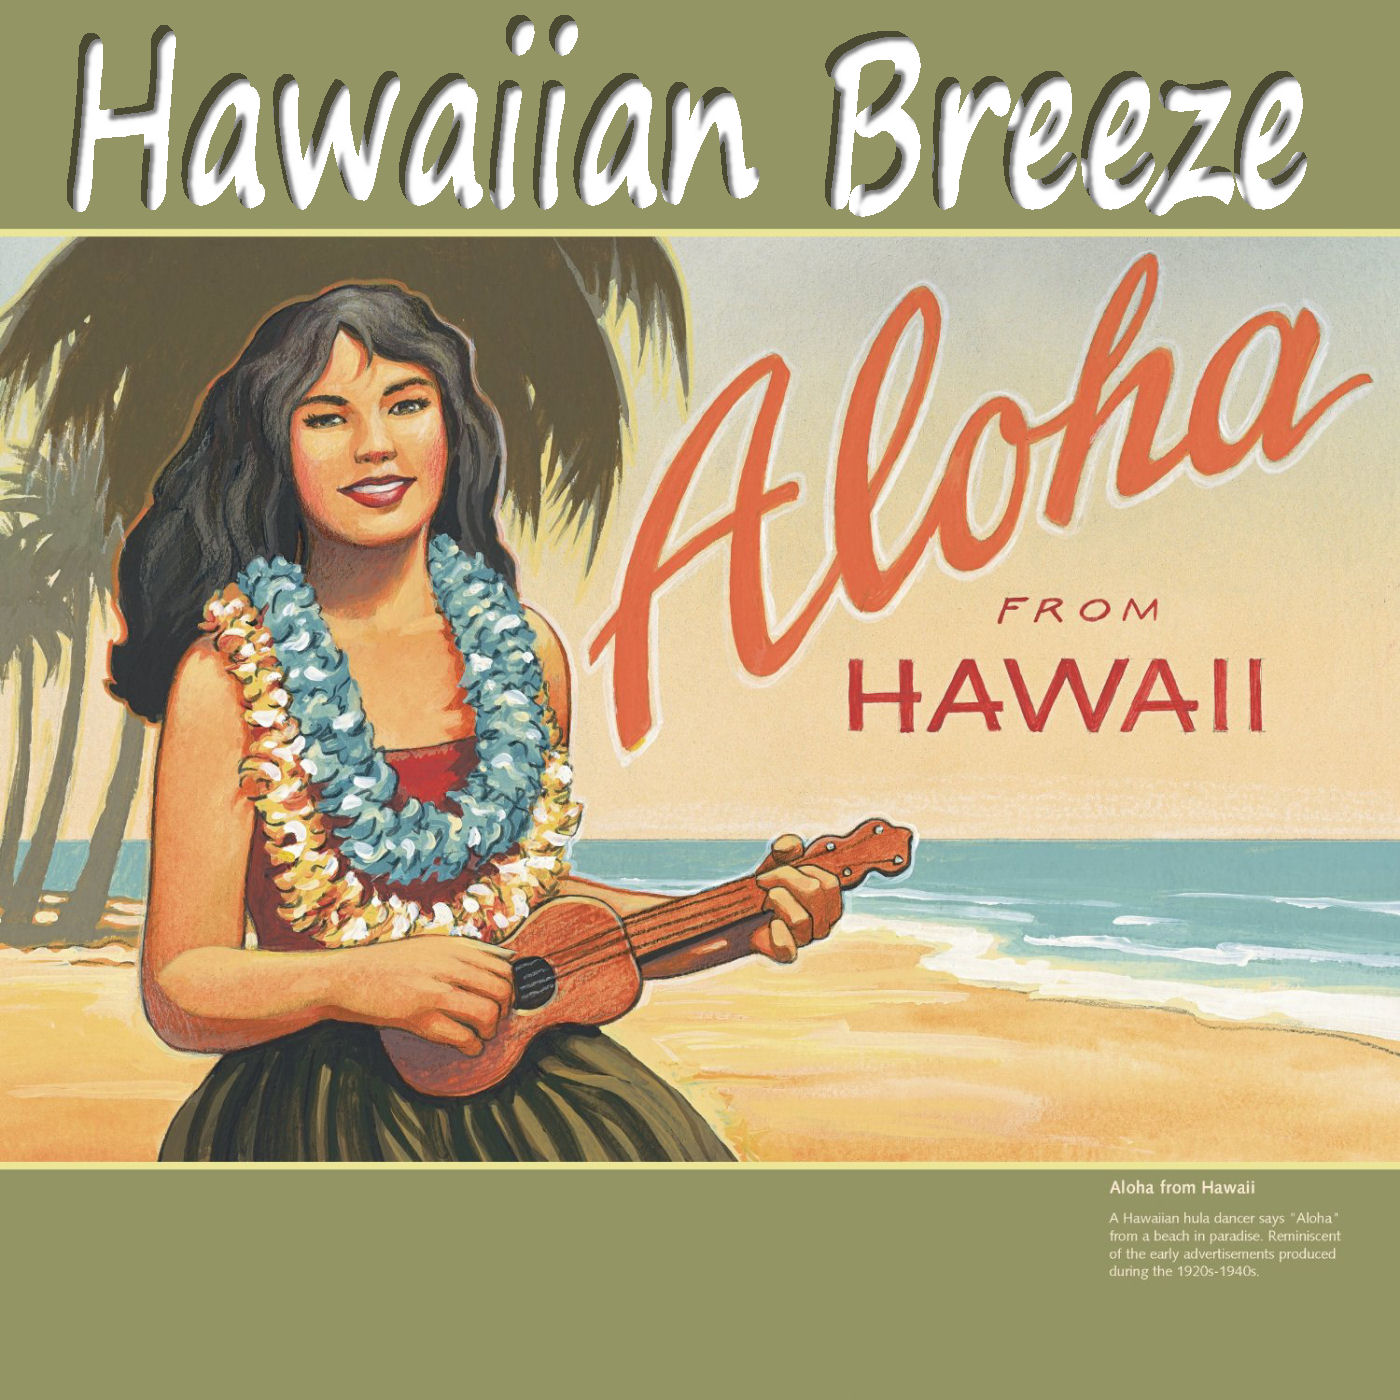 Caption: Hawaiian Breeze, Credit: Larry W Jones